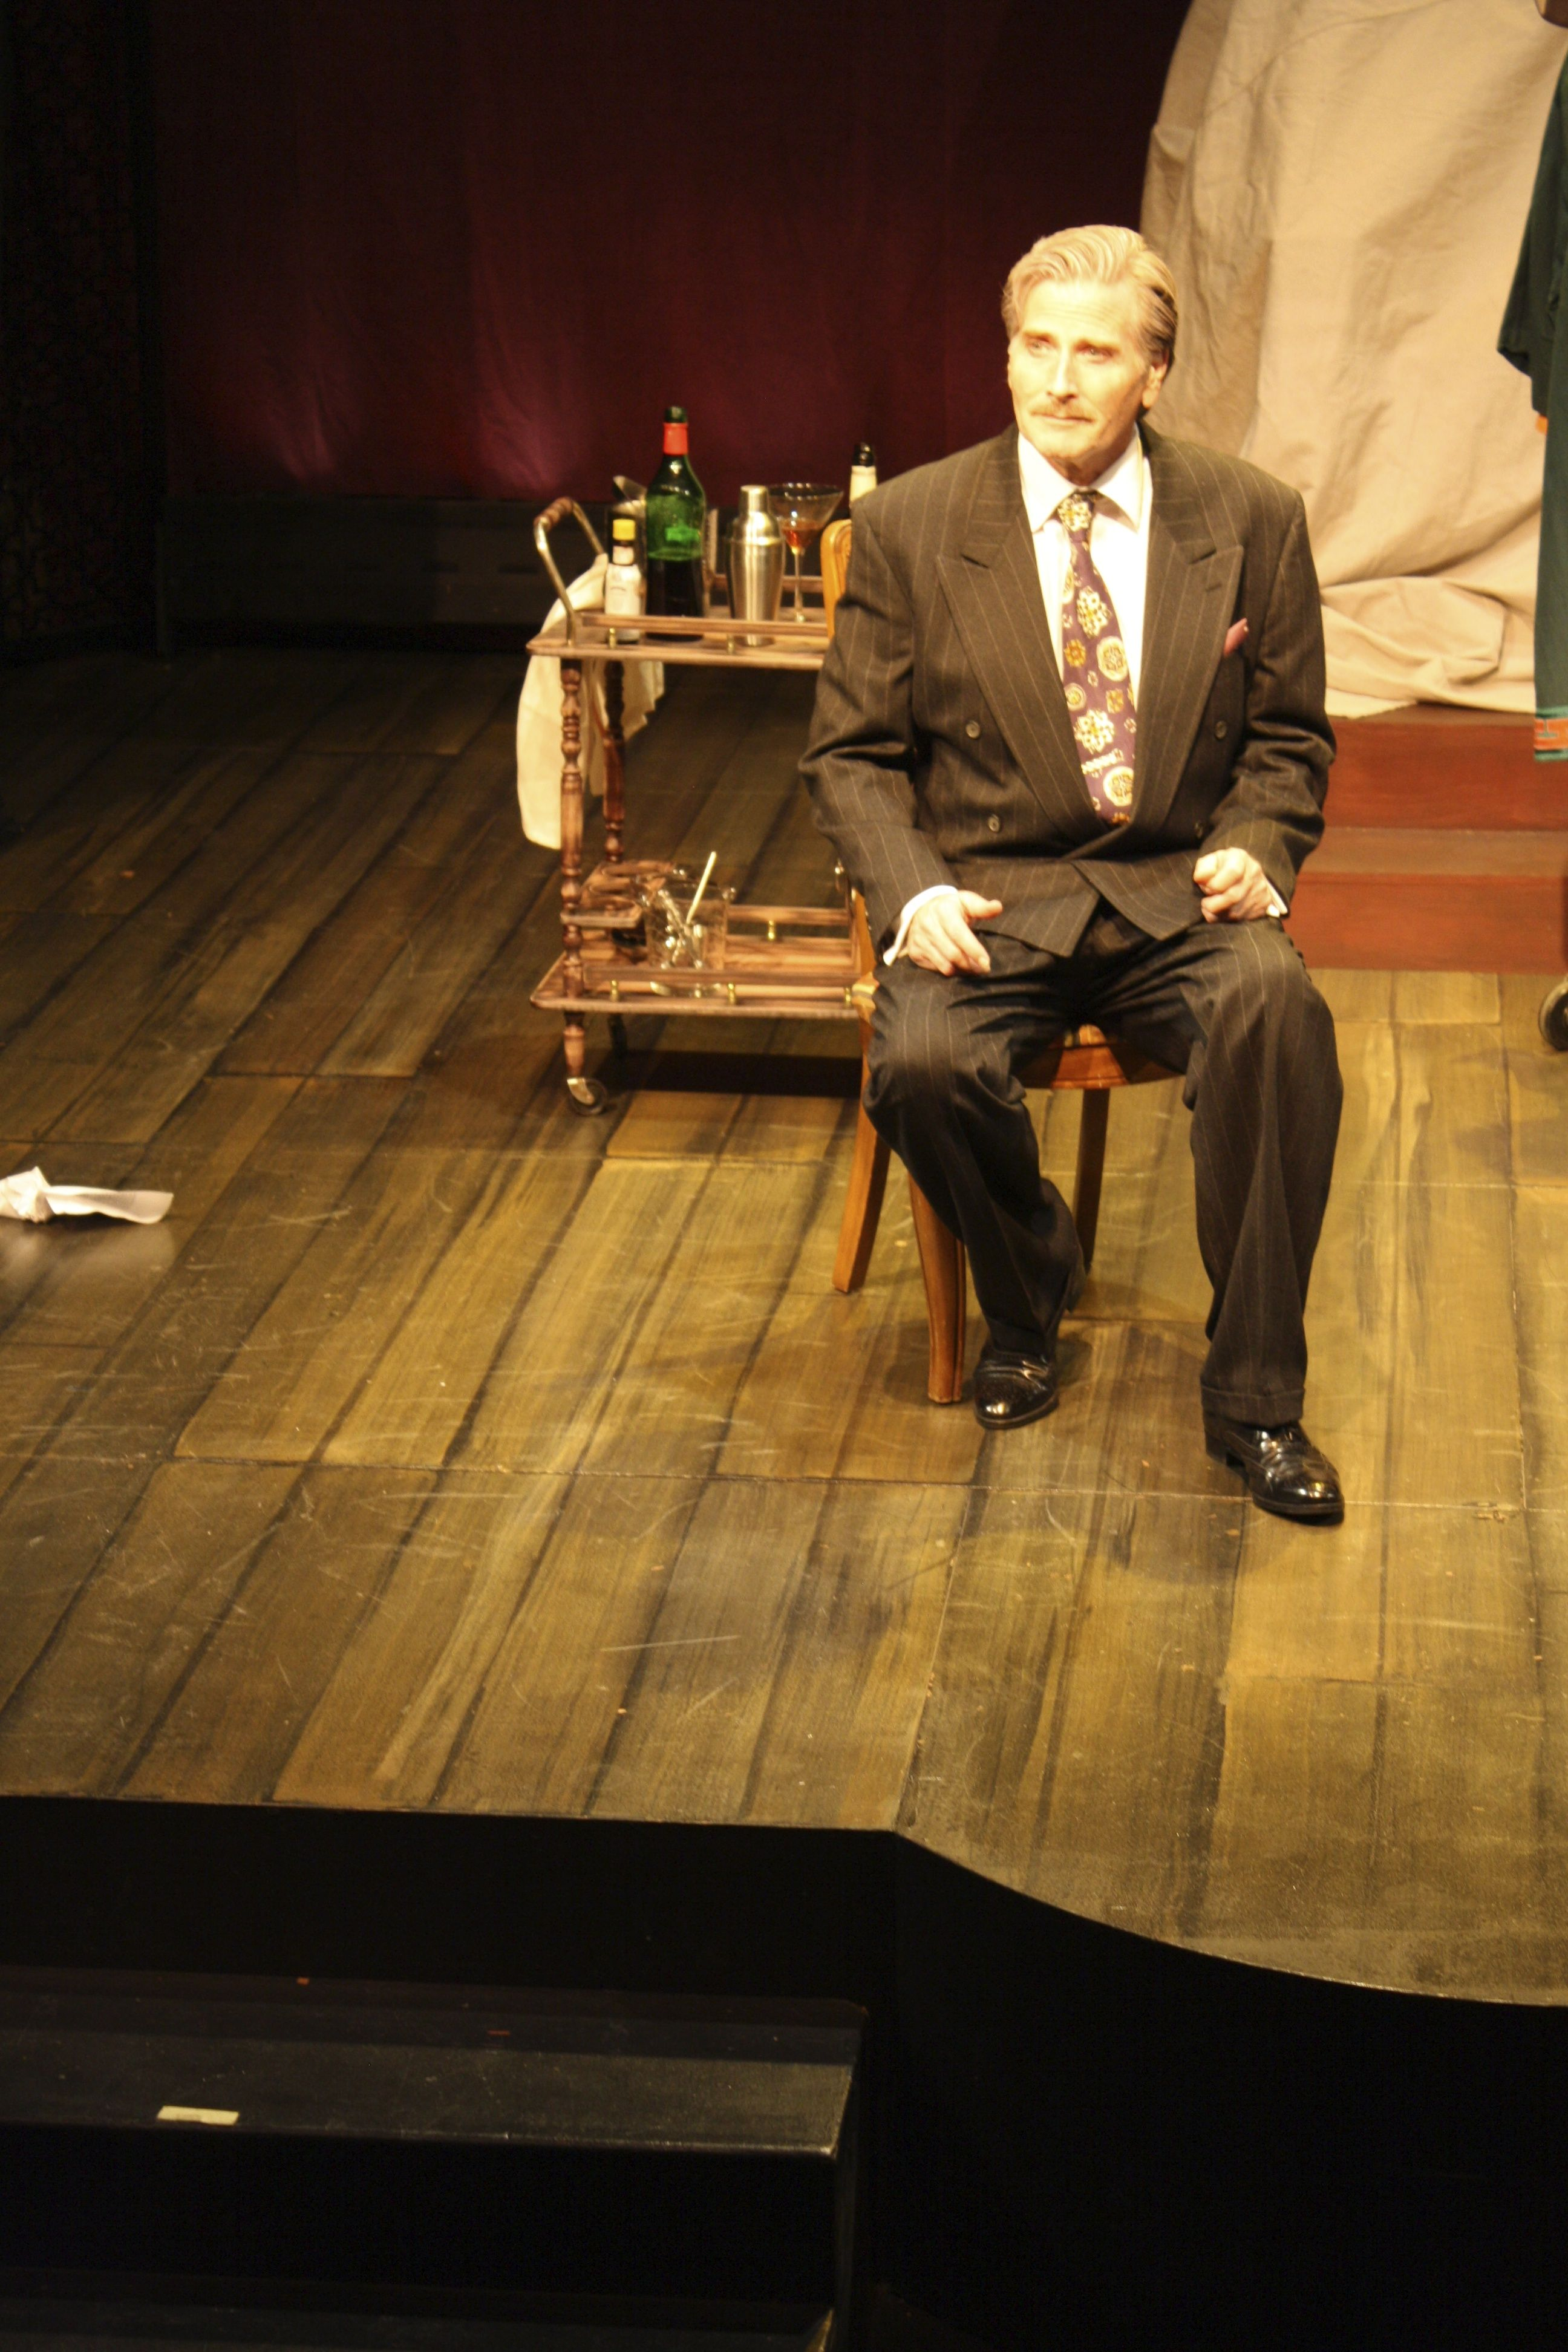 GPTC_Barrymore_seated storytelling-3